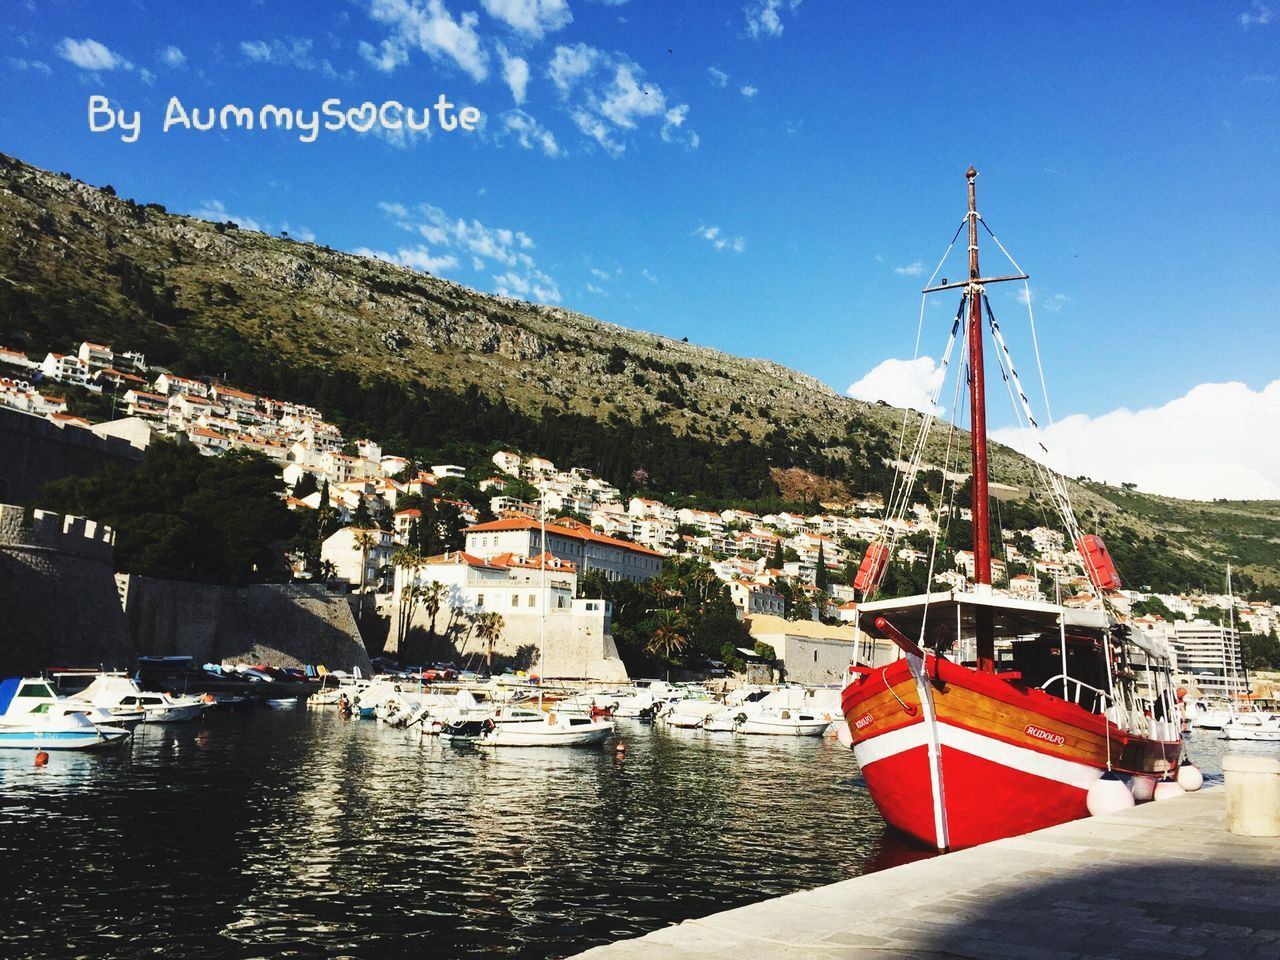 Hello World Relaxing Taking Photos Enjoying Life Sightseeing AummySoCute Enjoying The Sun Travel Photography Fresh Air Dubrovnik - Croatia❤